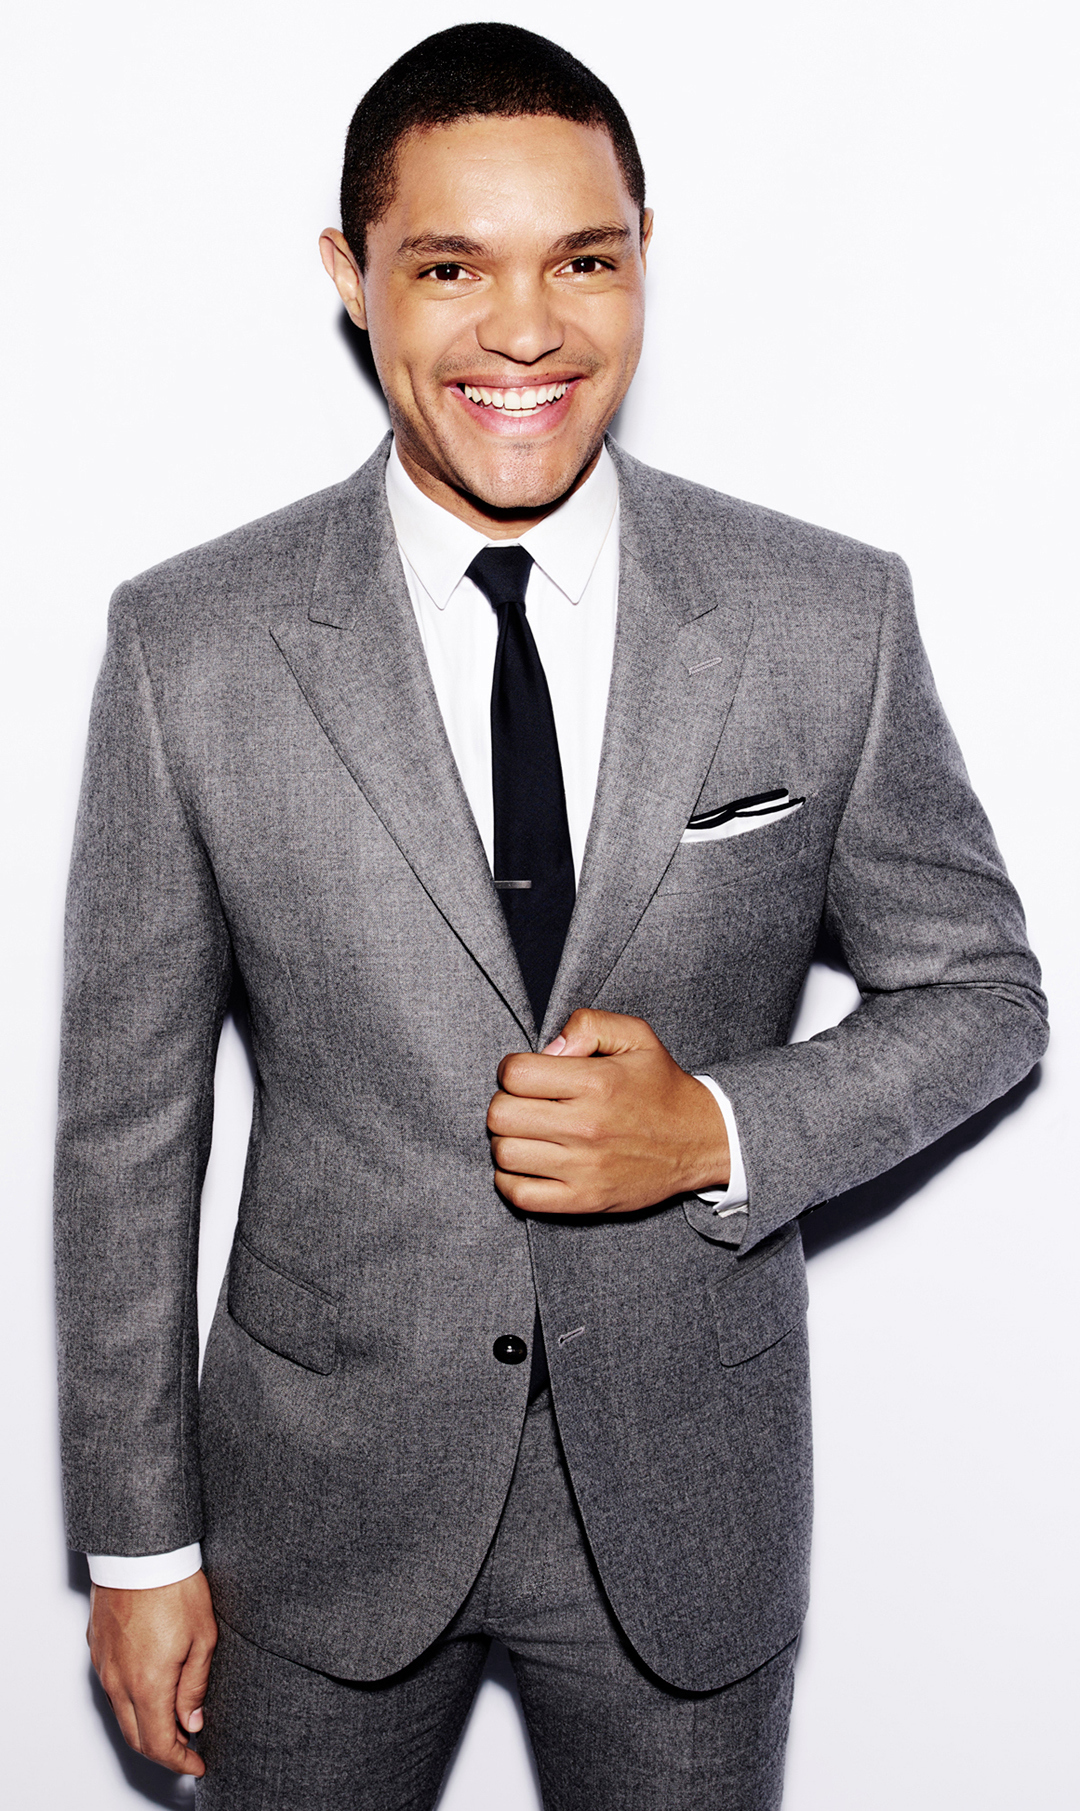 Trevor Noah wearing Grey Suit, White Dress Shirt, Black Tie, White